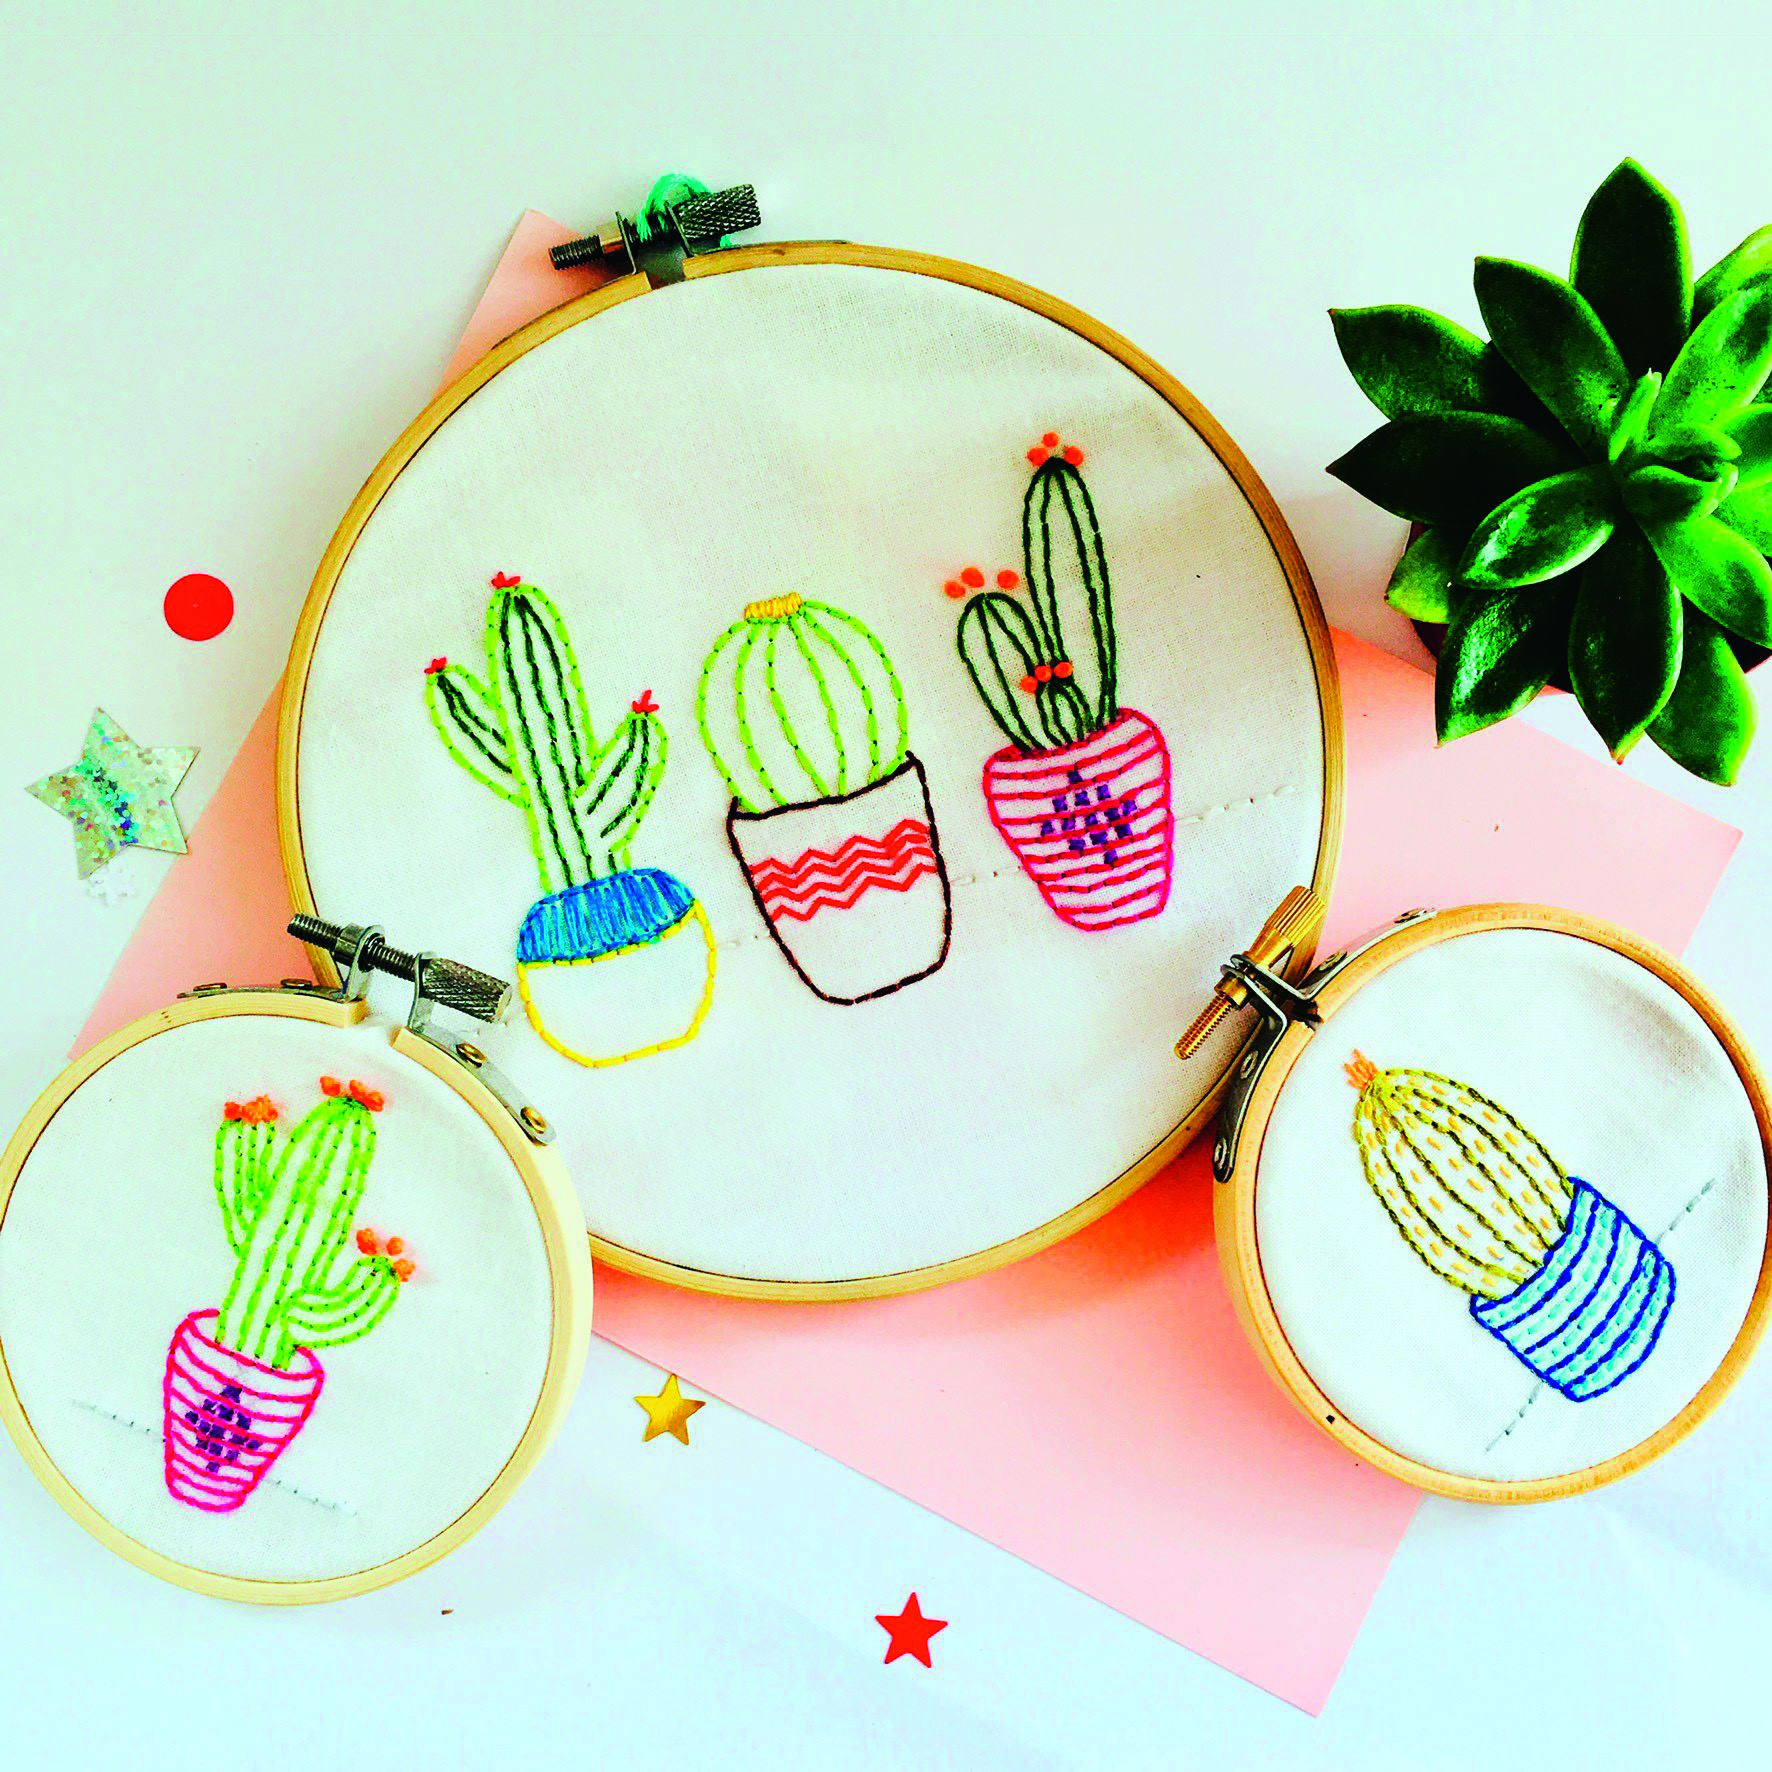 Cactus embroidery by Oz and Belle